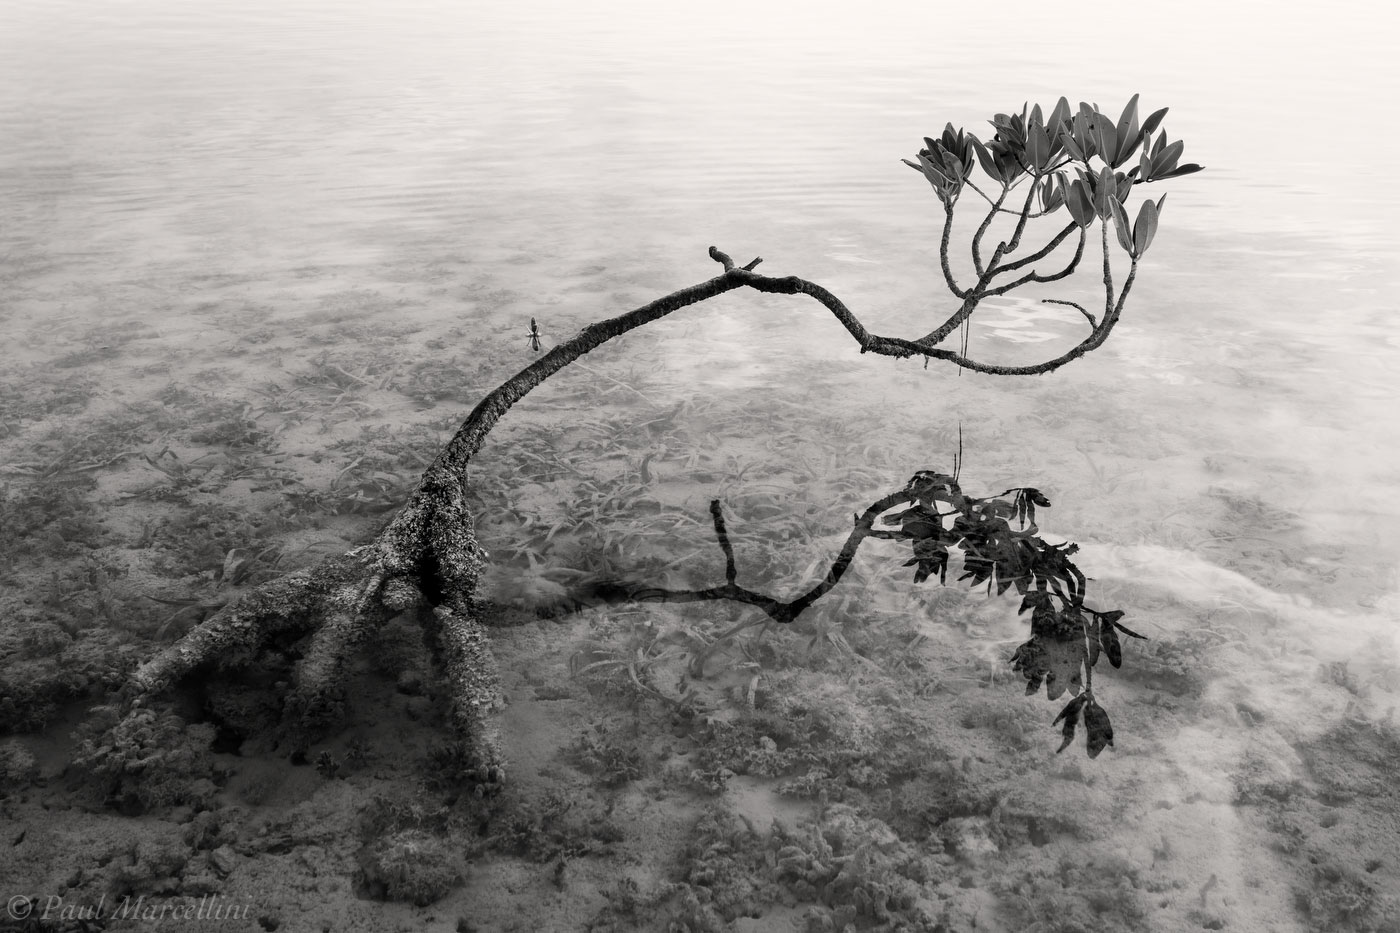 A small mangrove, dwarfed by the harsh environment.